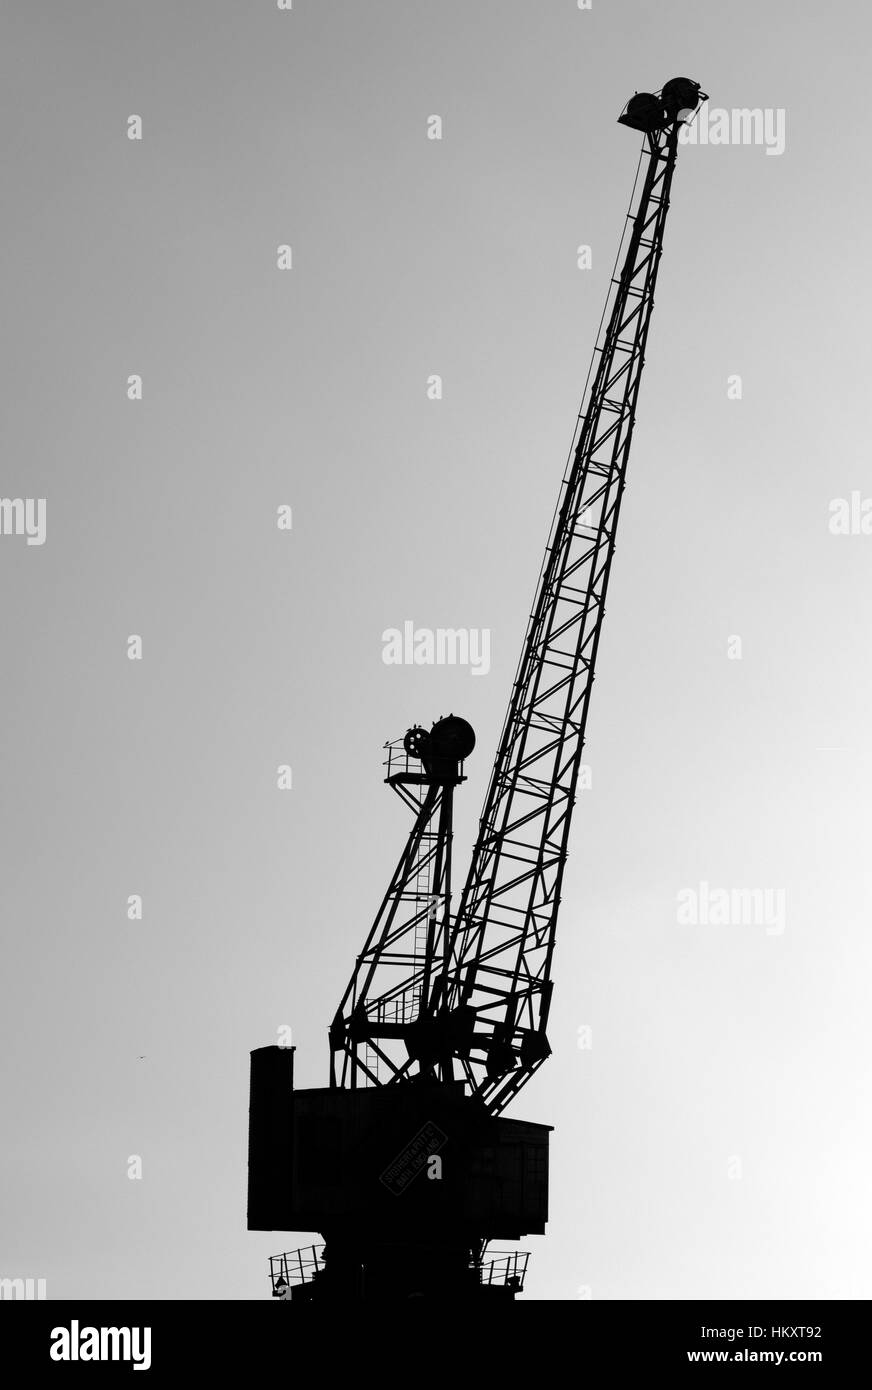 Silhouette of a crane in docklands, London, UK - Stock Image